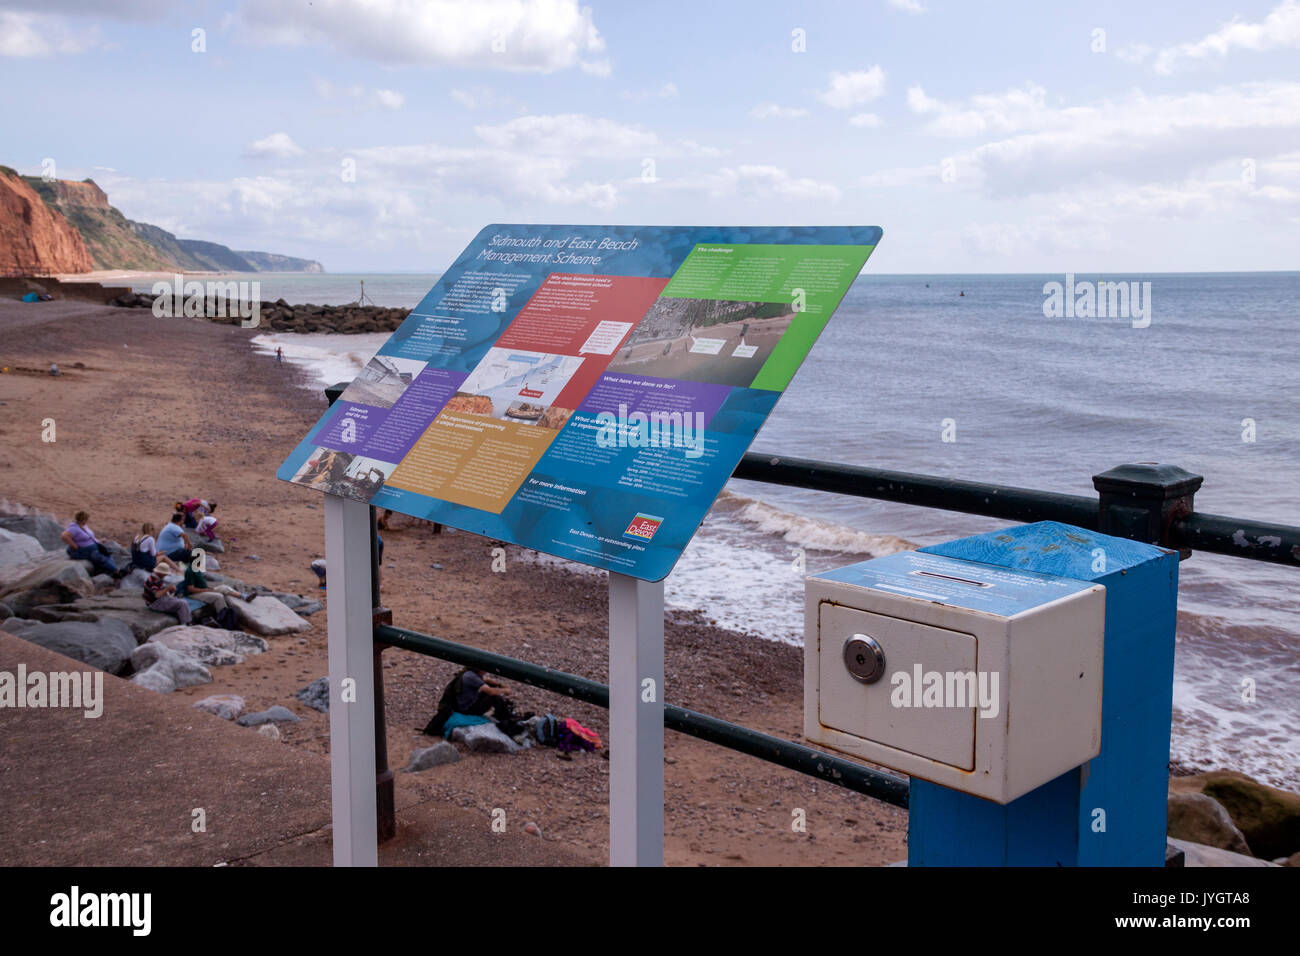 Sidmouth, 19th Aug 17 A council scheme to raise funds for beach management in Sidmouth, Devon has backfired. The collection box and information board that cost £1,400 has collected only £100 in the four months following it being fitted to the seafront location in April. East Devon District Council needs to find £3.3 miillion to reach its beach management target. Credit: Photo Central / Alamy Live News - Stock Image